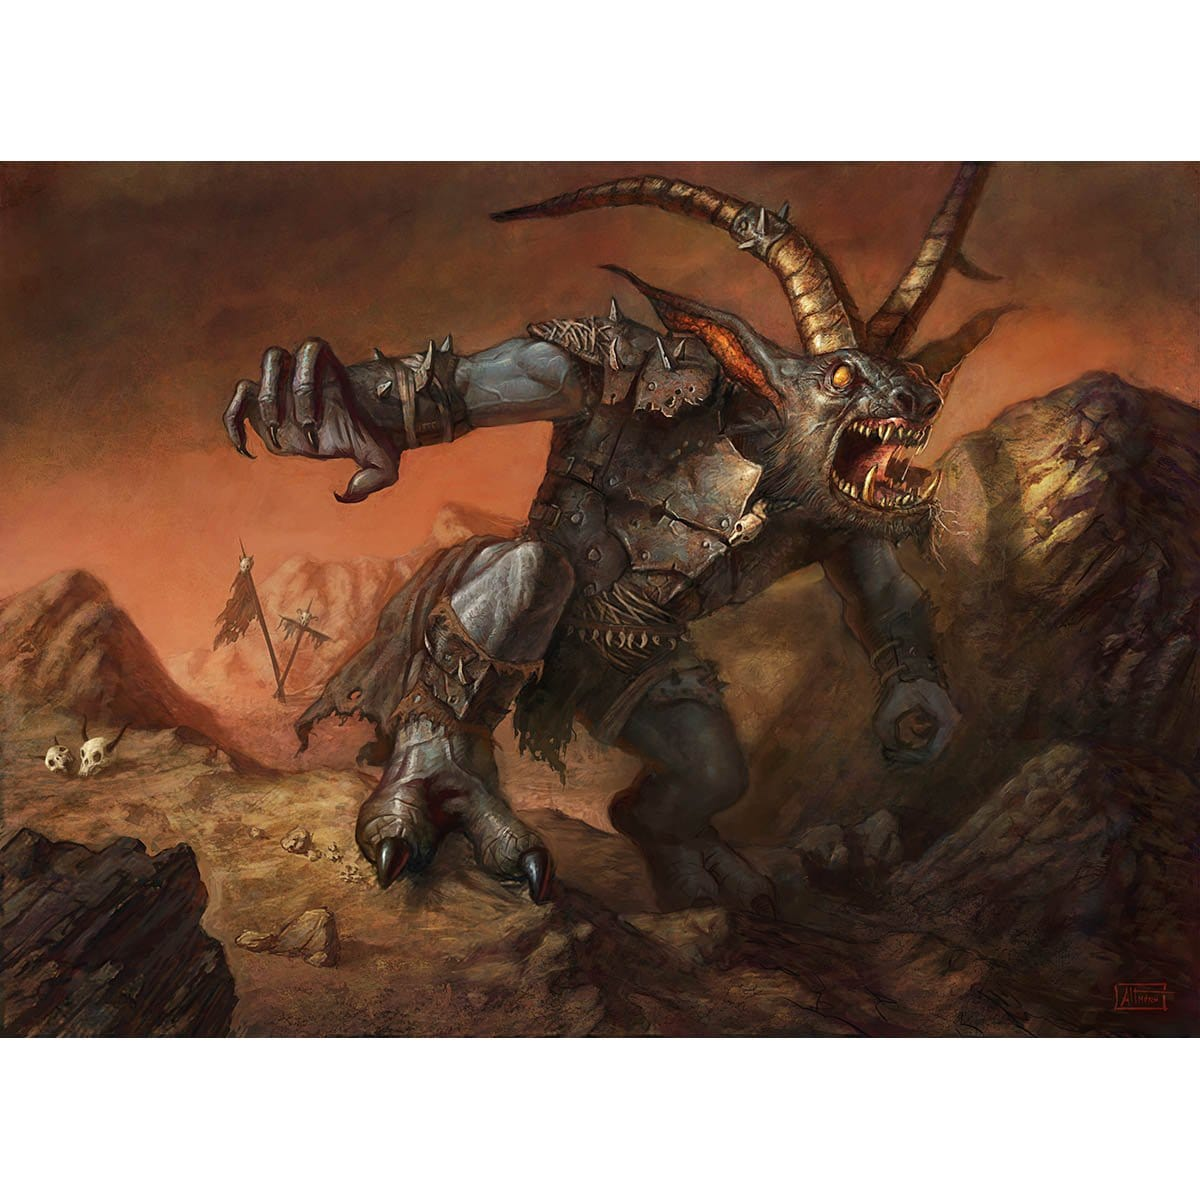 Scuzzback Scrapper Print - Print - Original Magic Art - Accessories for Magic the Gathering and other card games